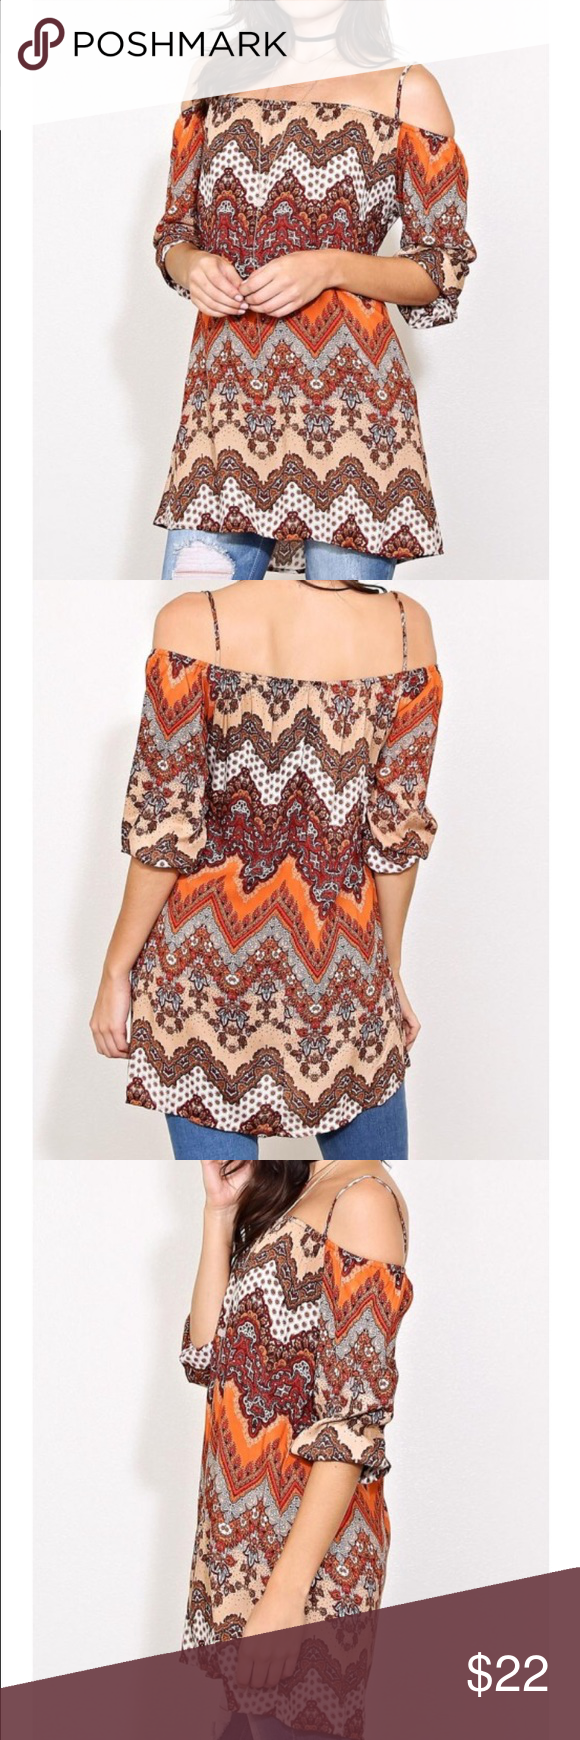 Off the shoulder bohemian top The top speaks for its self. Great fall colors with a little bit of sexy to go along with it! Tops Blouses